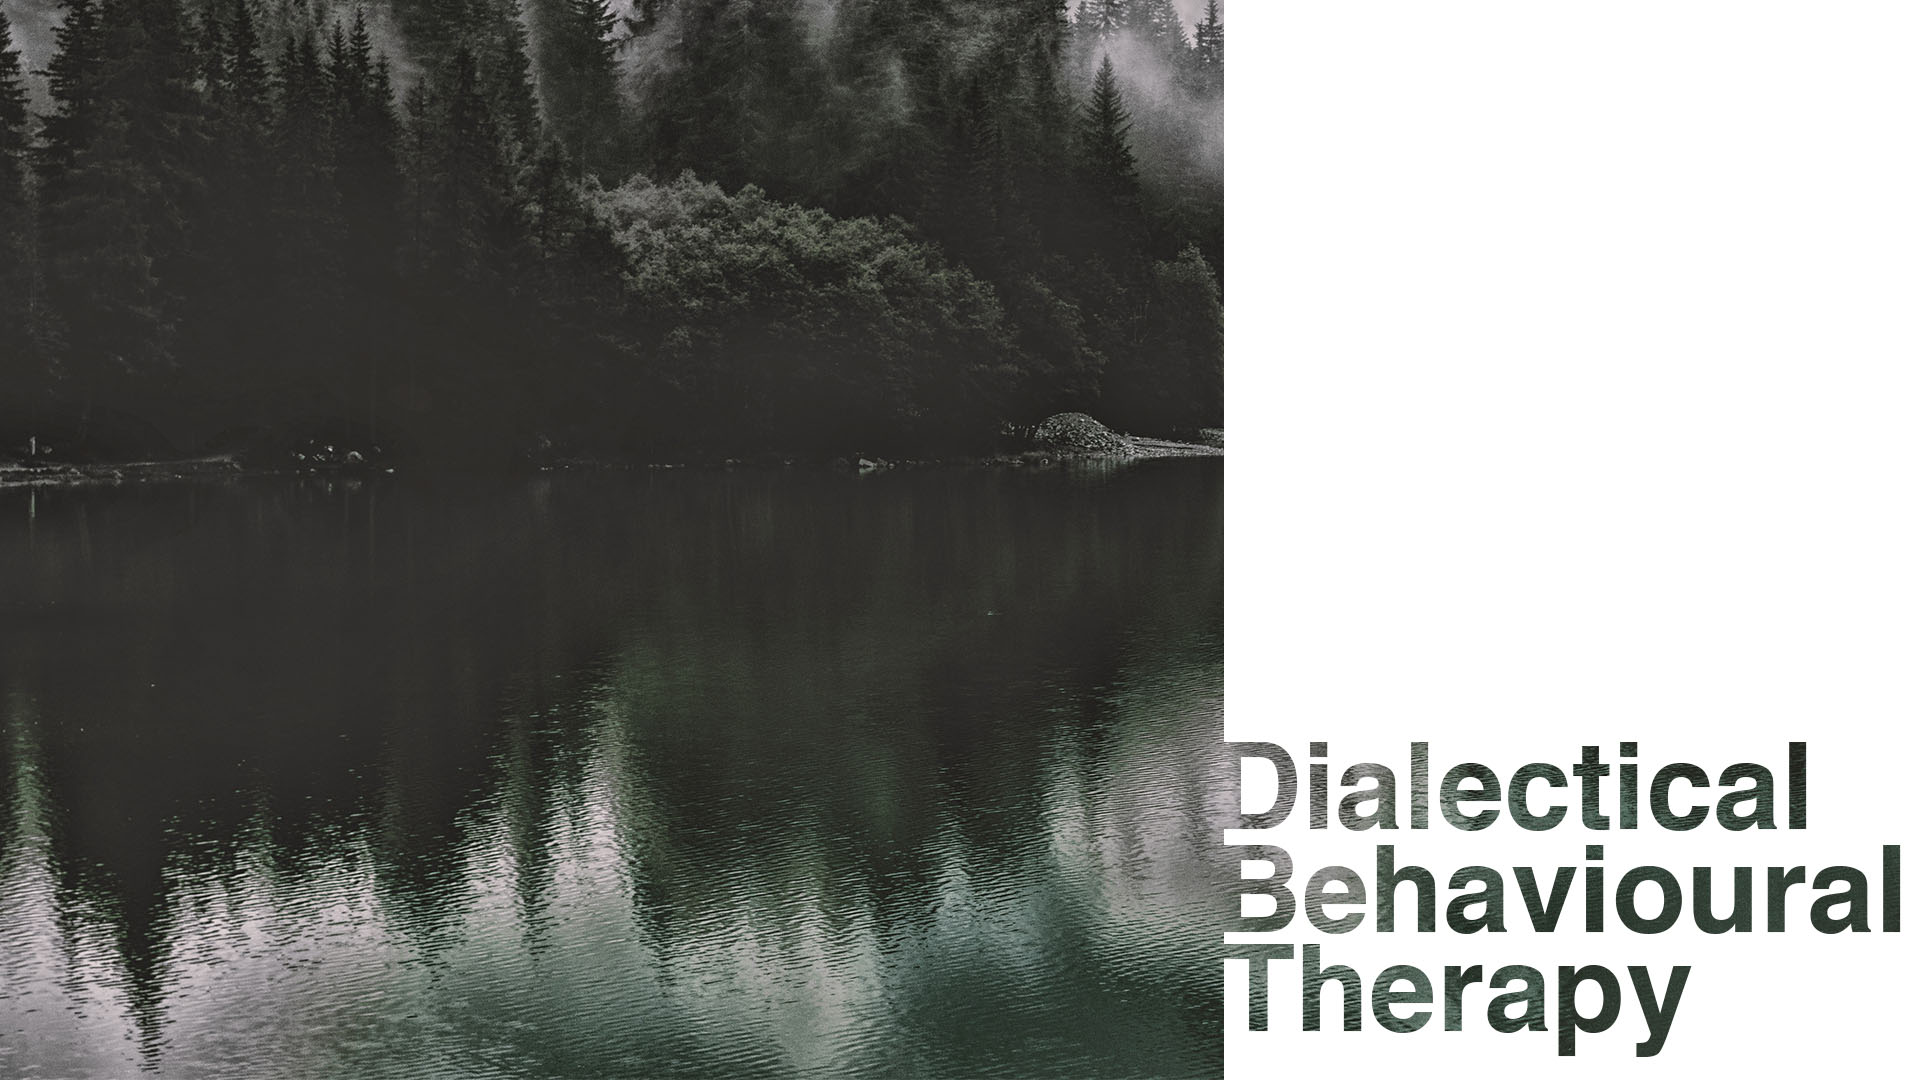 Dialectical Behavioural Therapy hoxton therapy